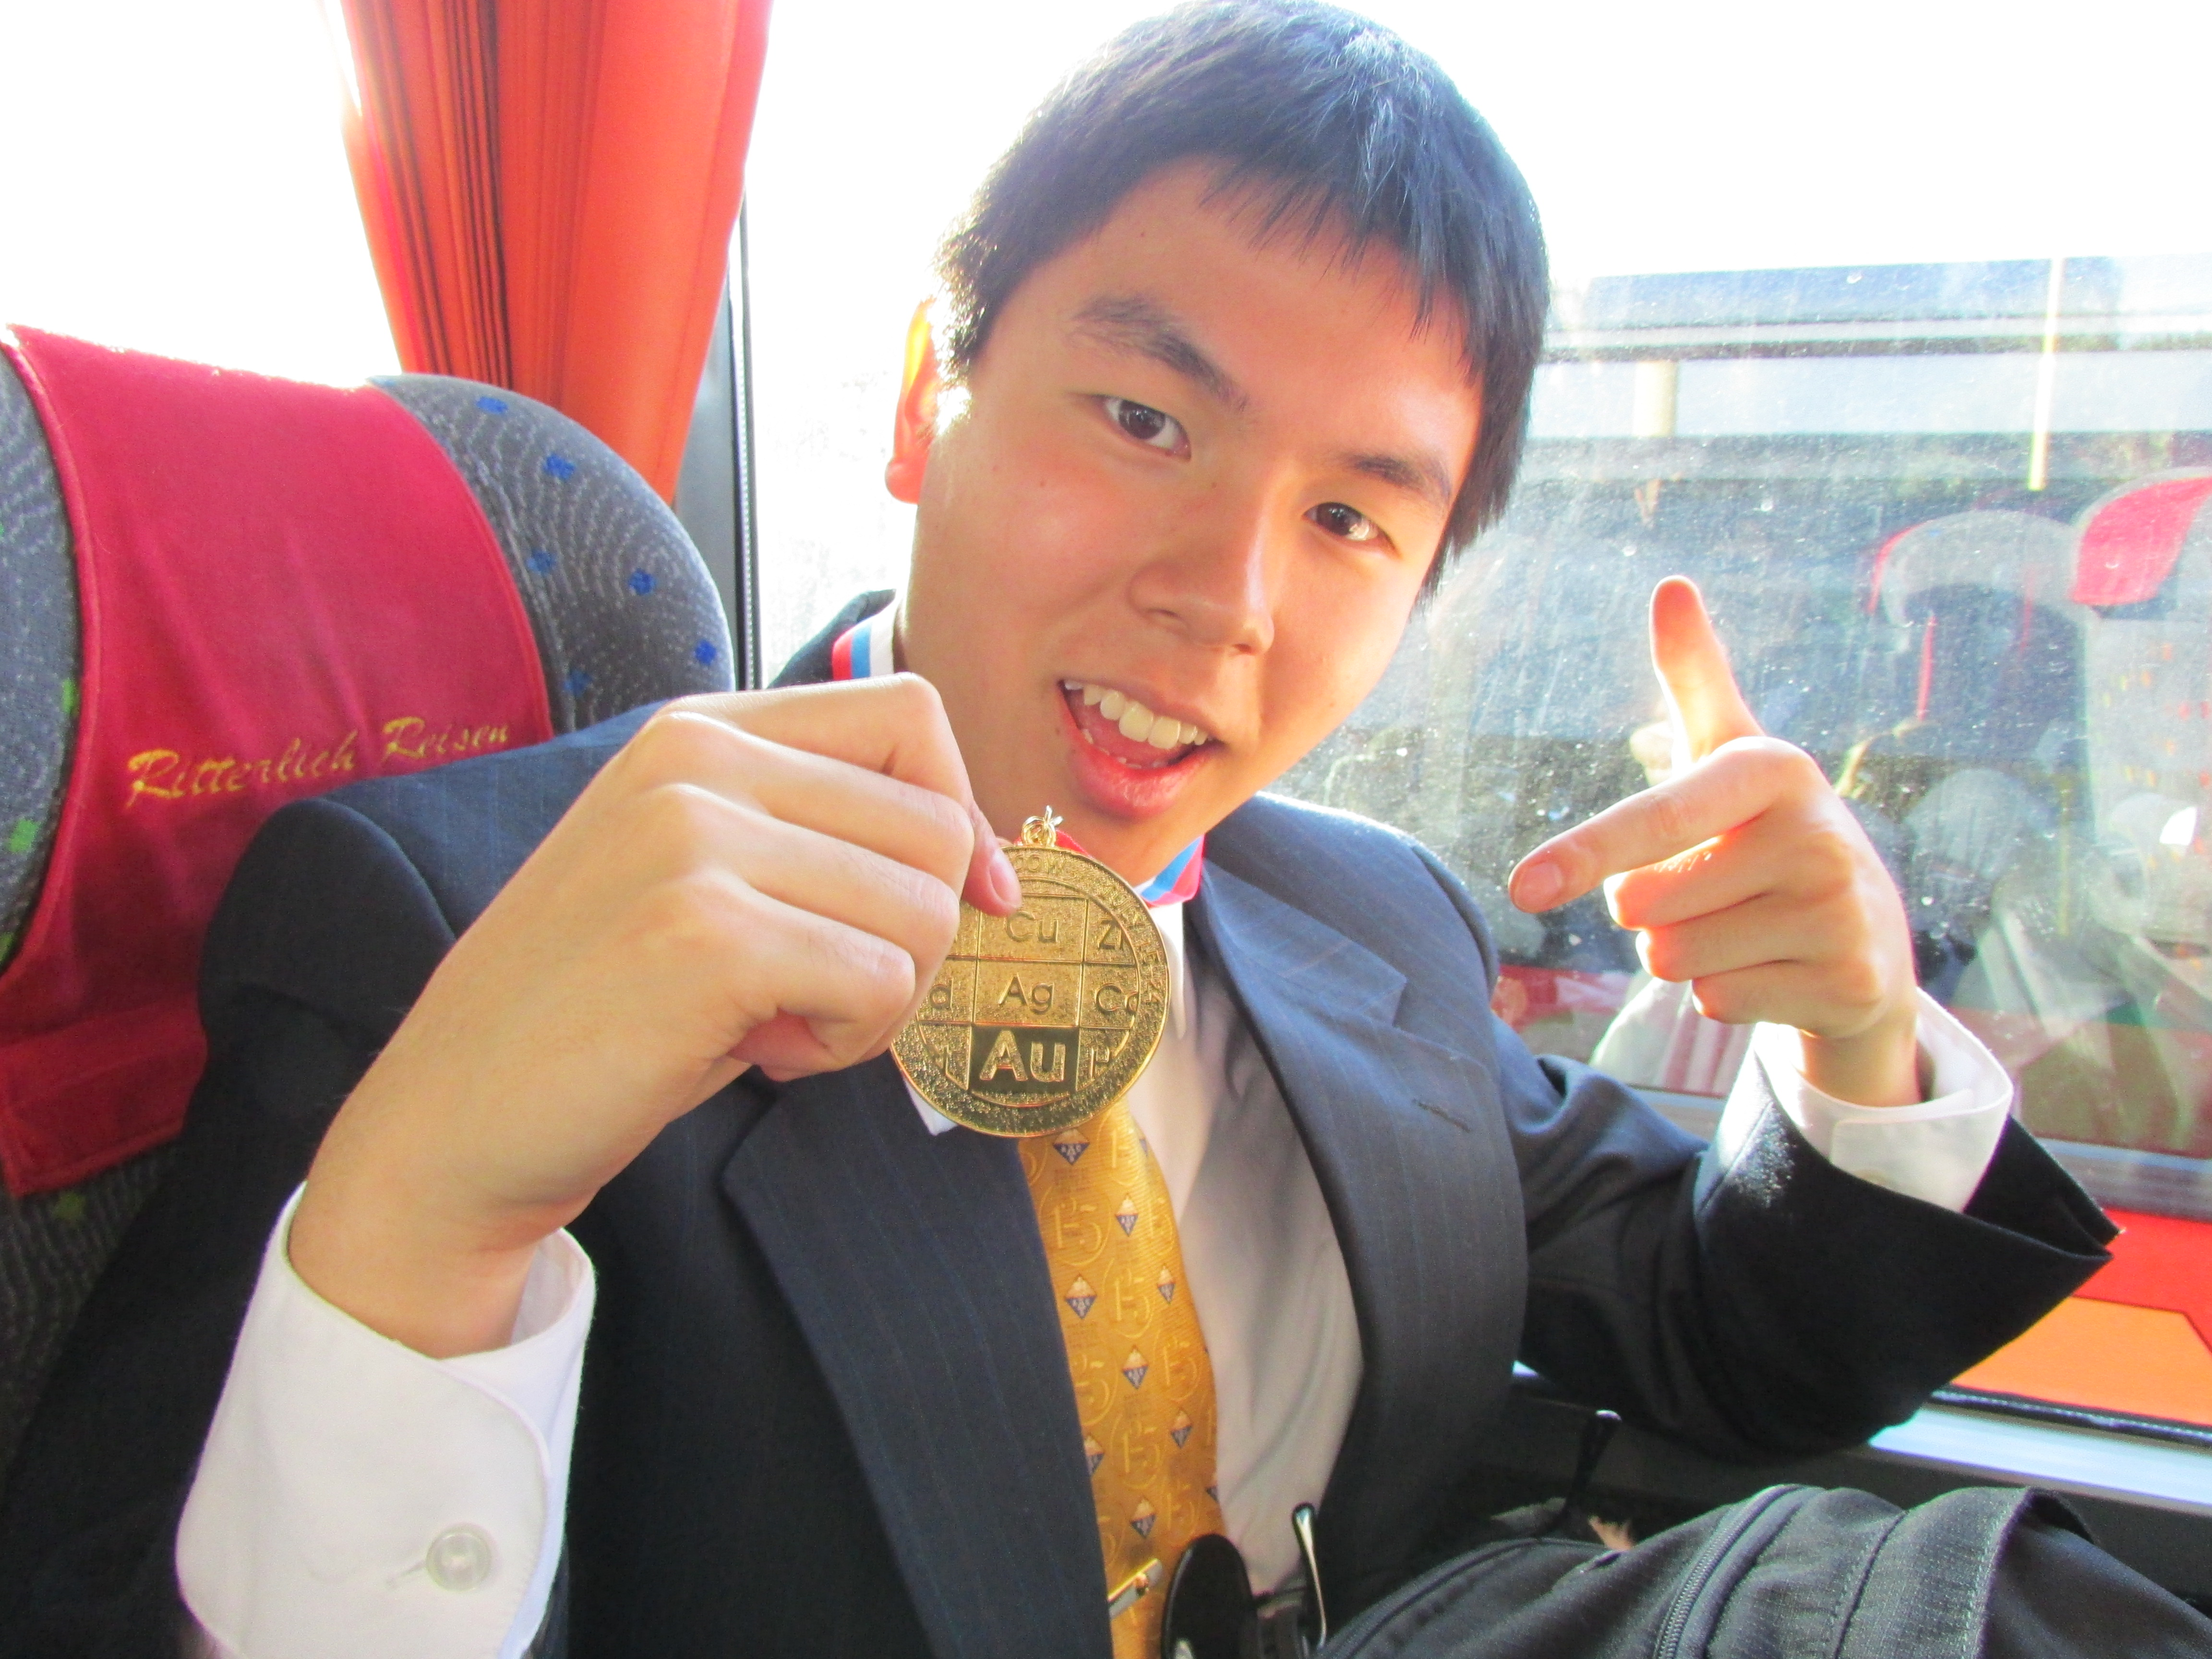 David Laing shows off his gold medal. (Submitted photo)